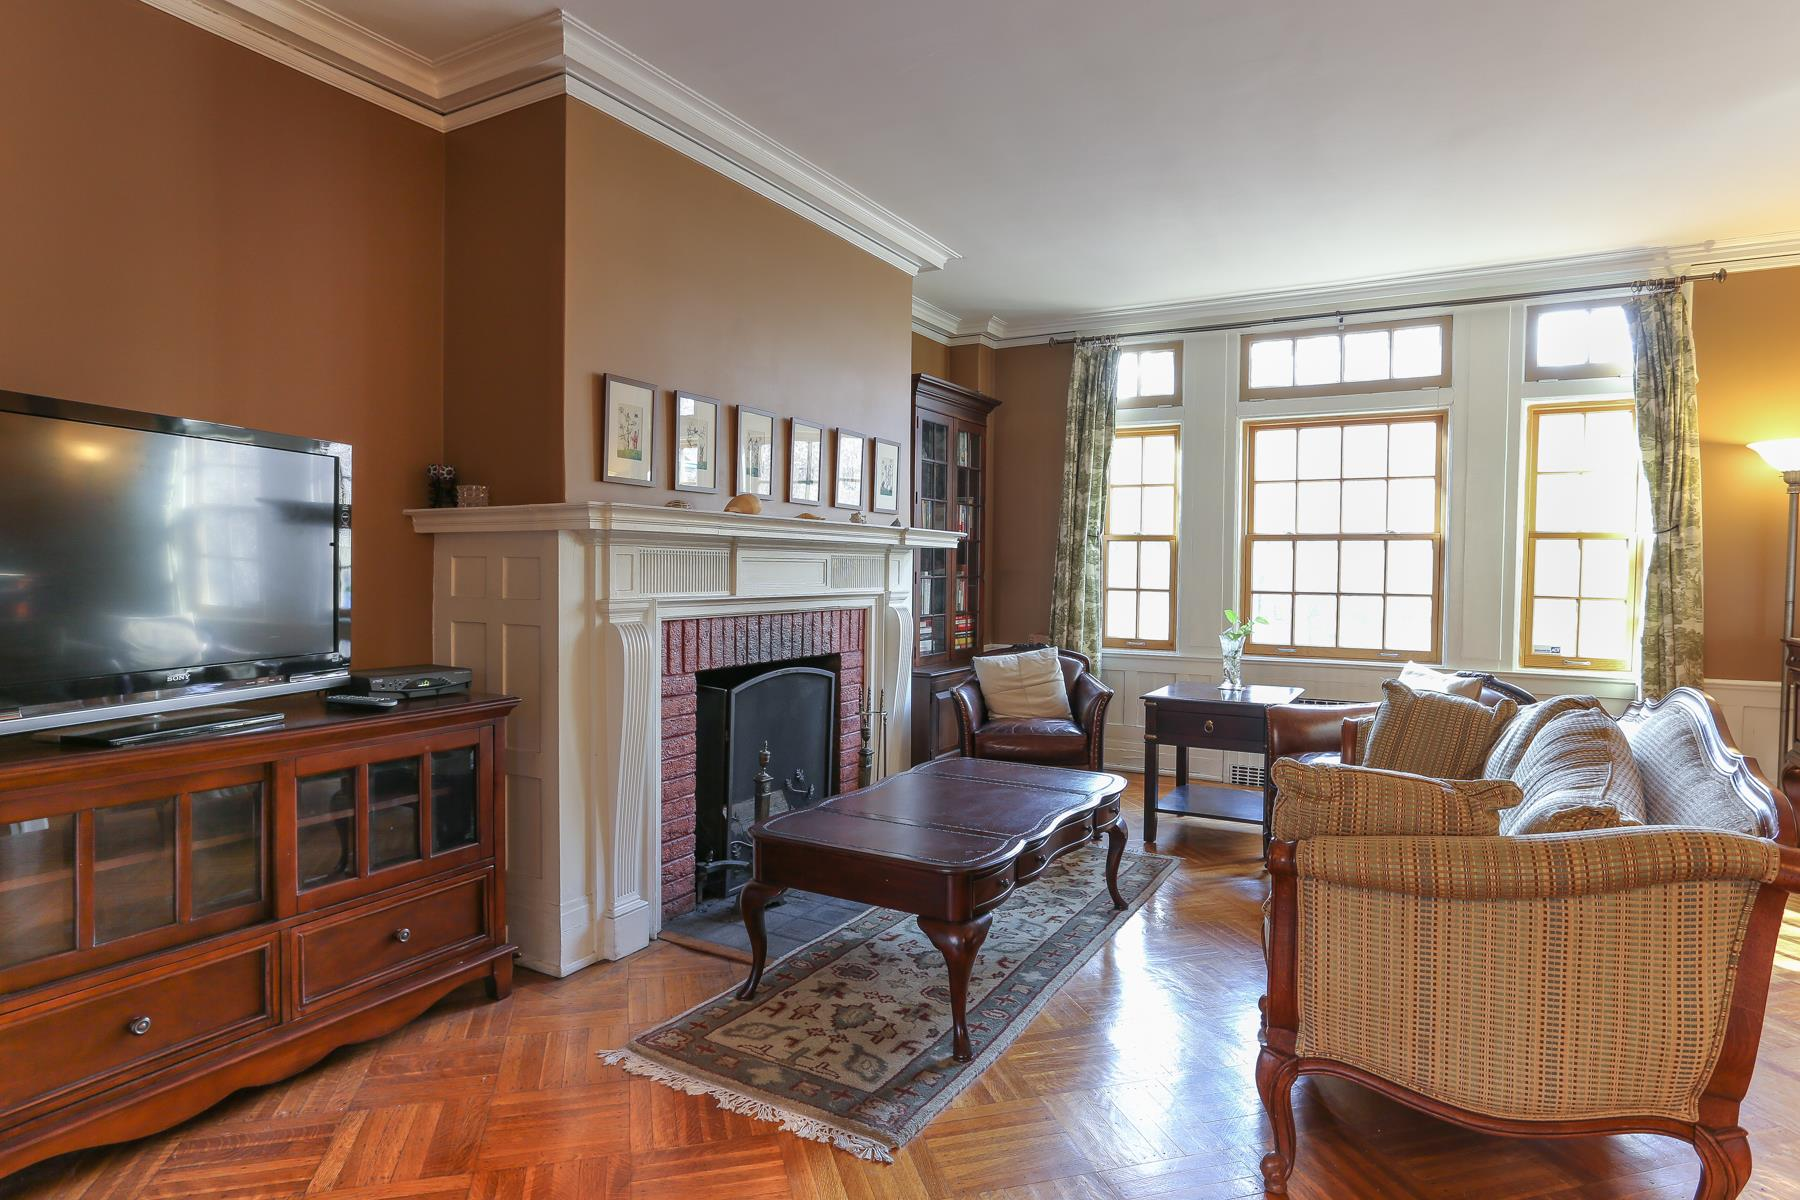 Additional Photo For Property Listing At 14 GREENWAY TERRACE FOREST HILLS GARDENS NYC Forest Hills